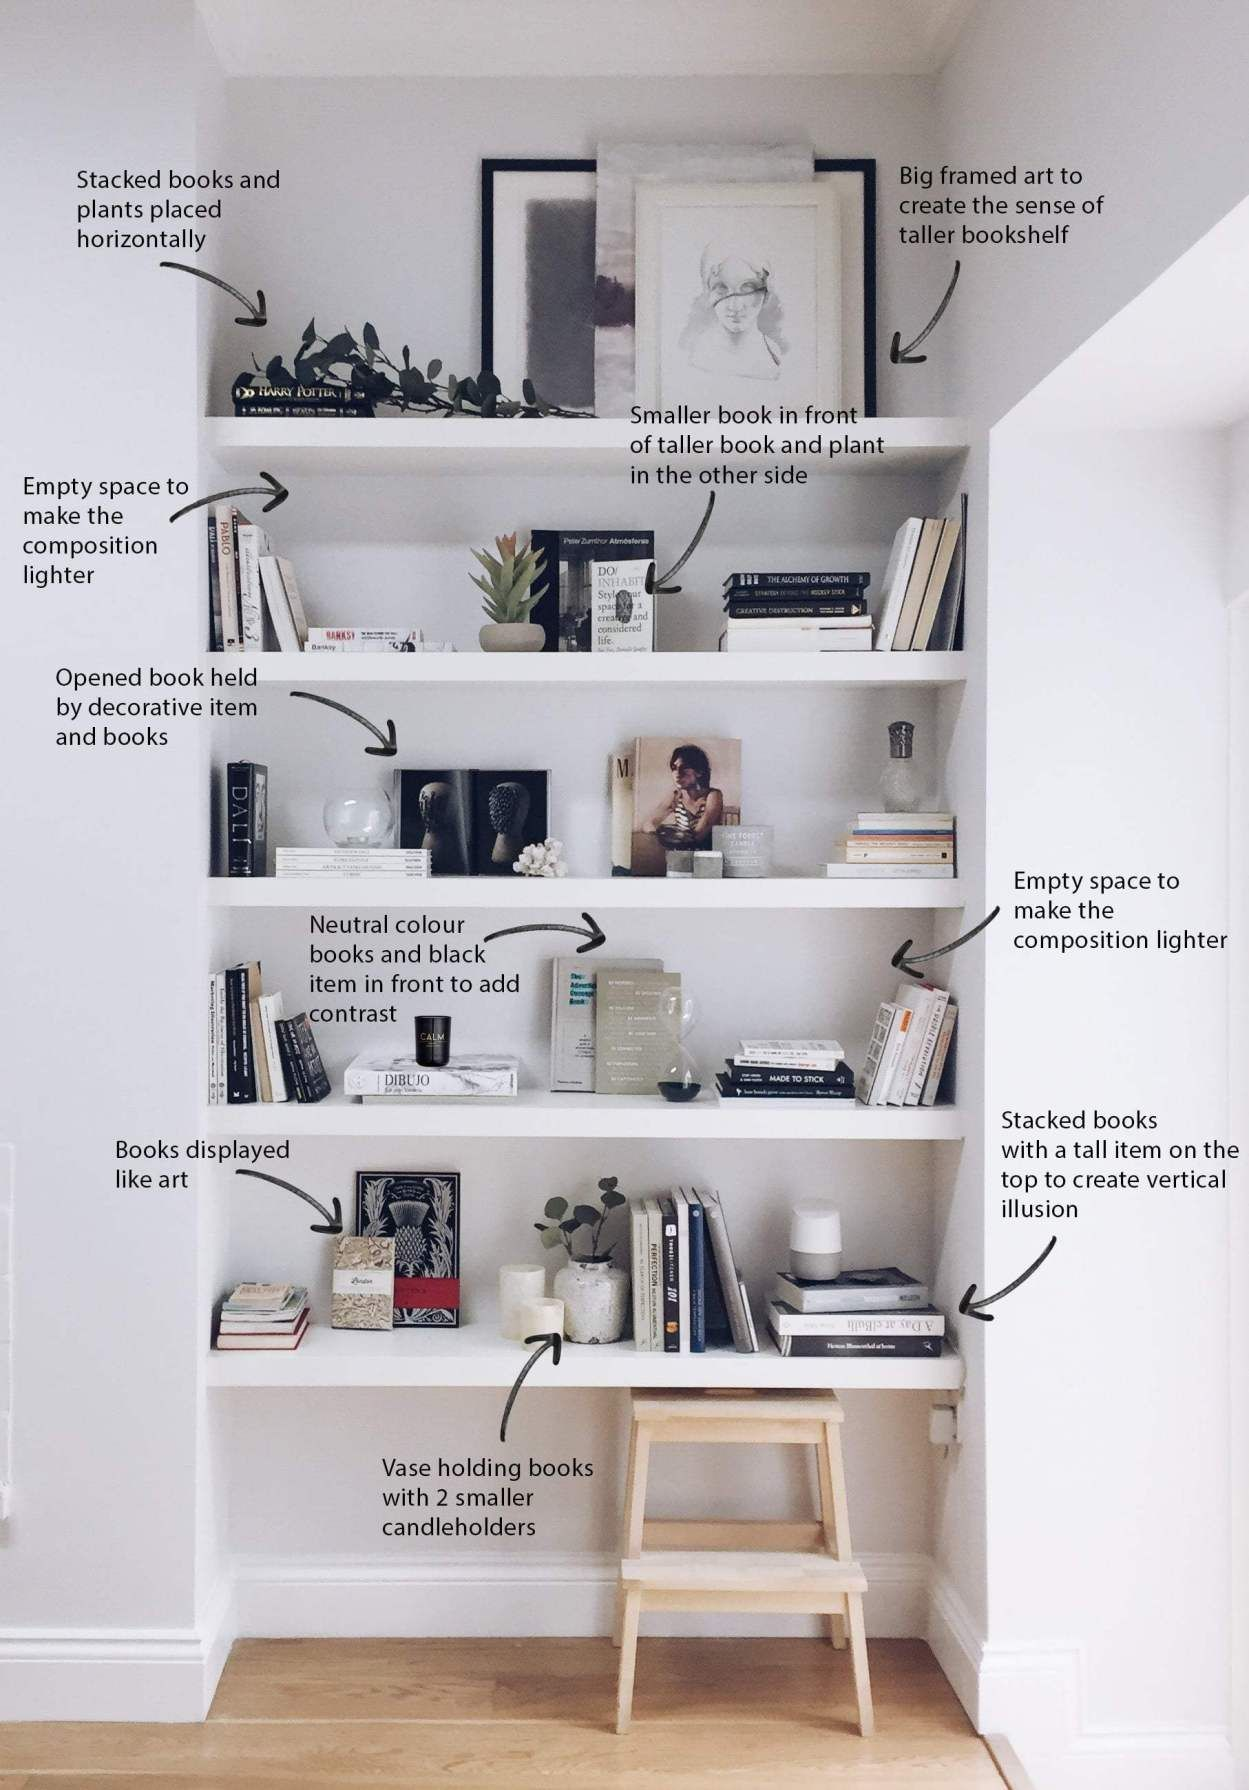 How to decorate your shelves: the minimal style